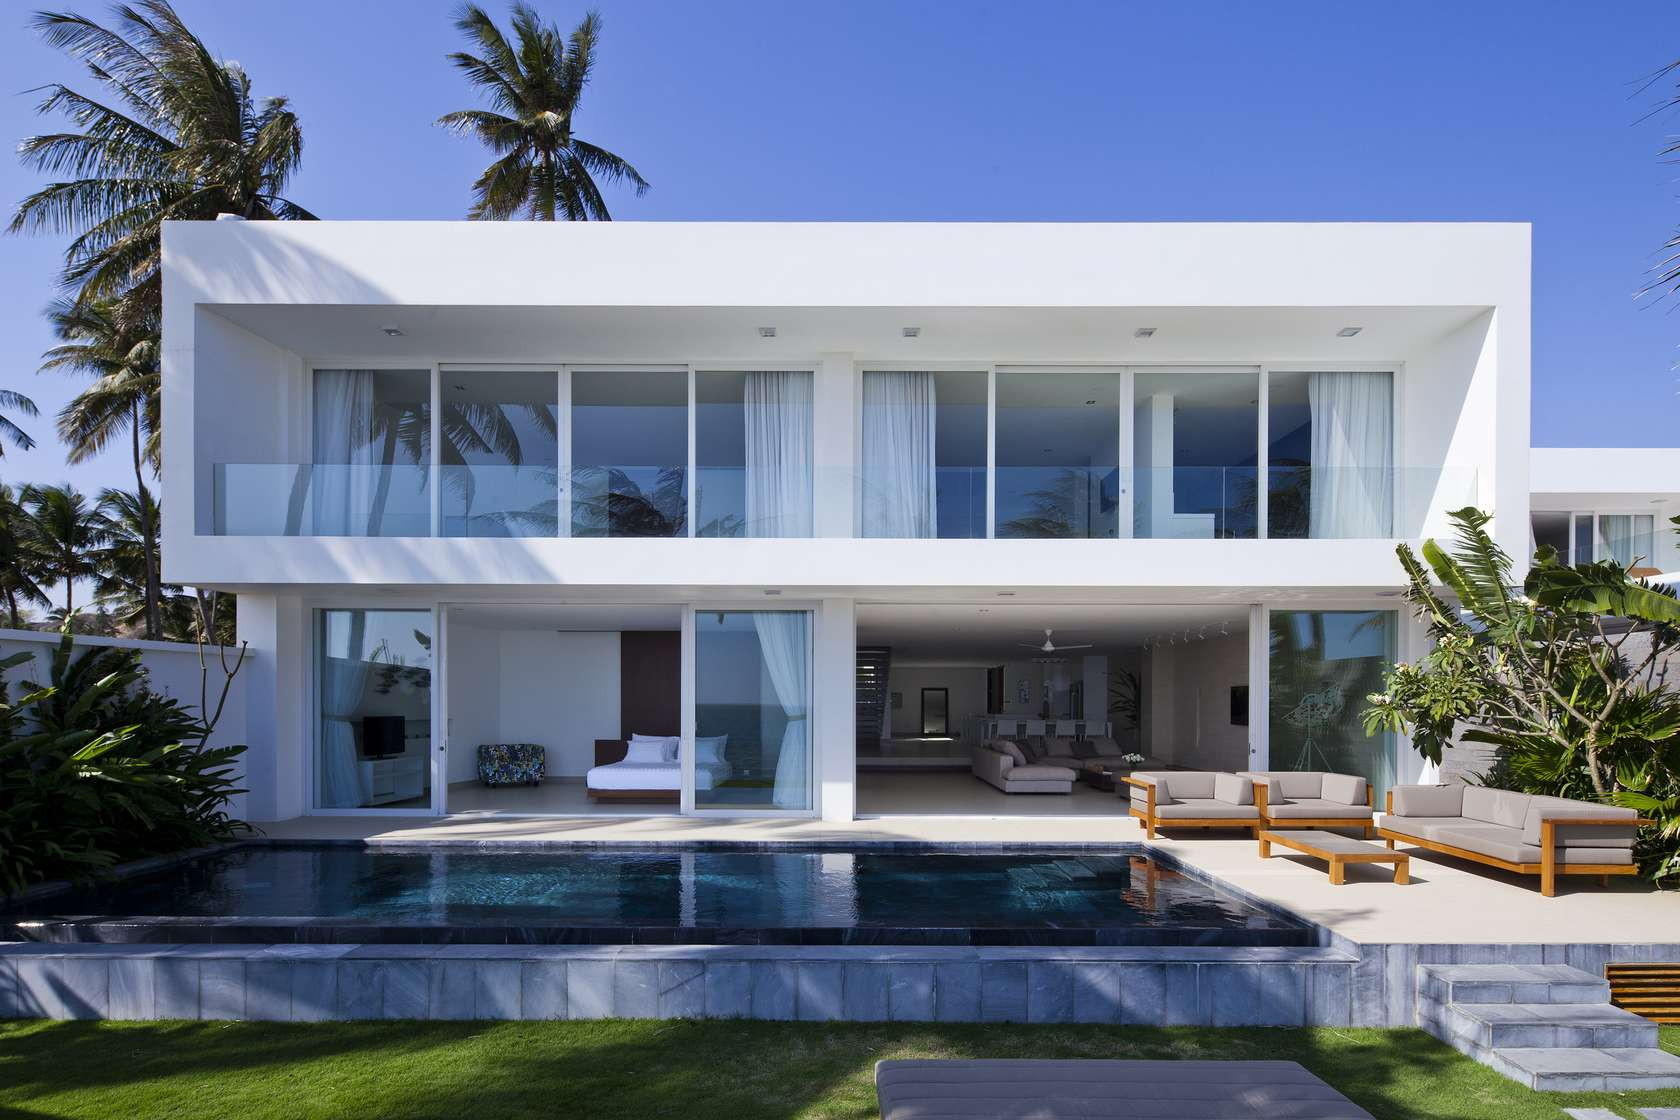 Private beach villas offer spectacular ocean views and Contemporary coastal house plans